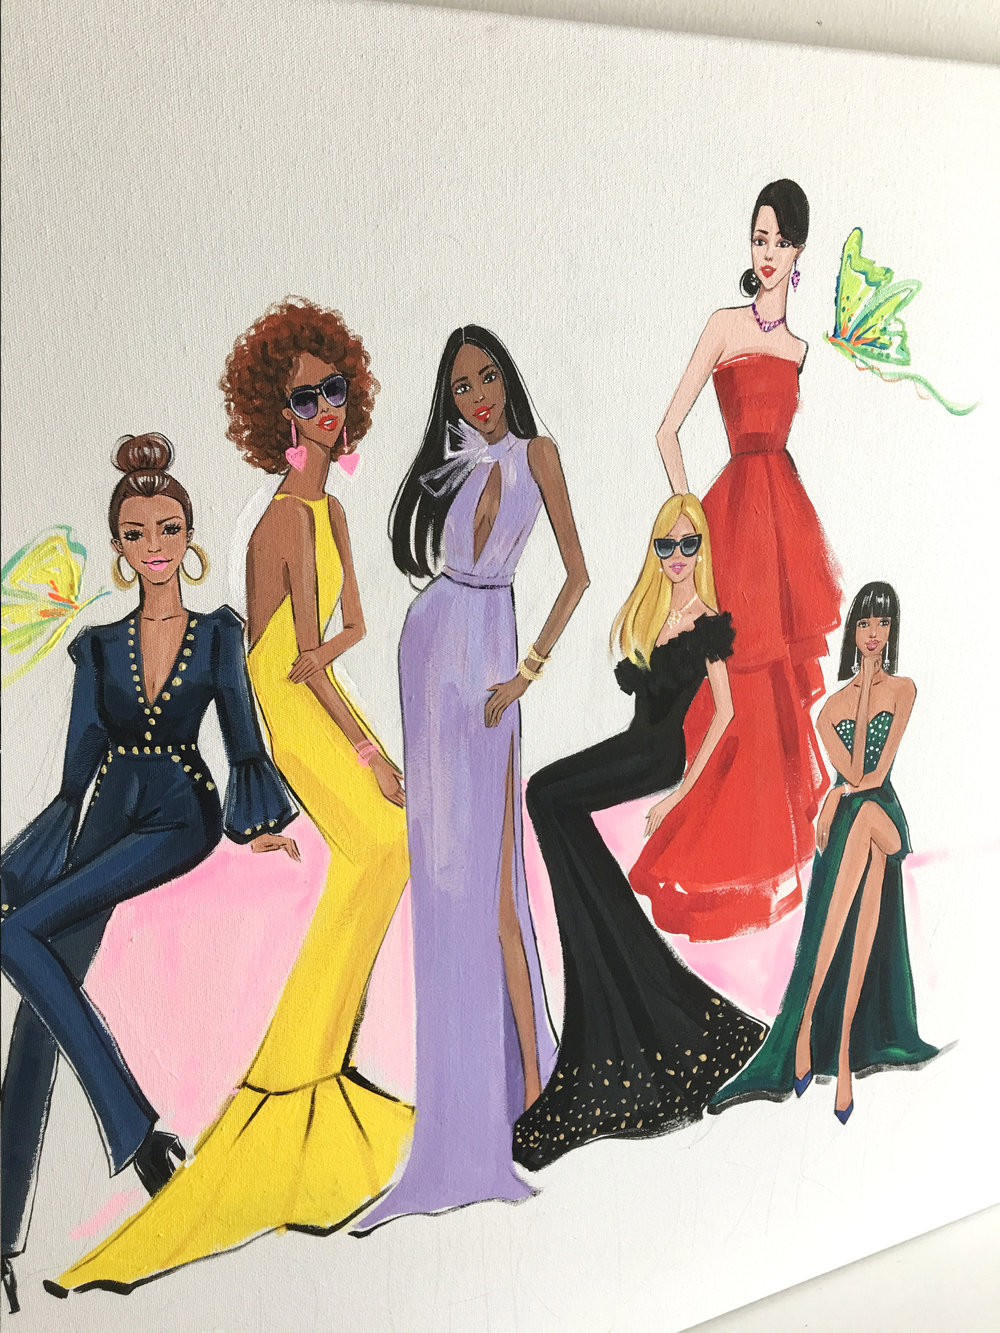 Fashion painting for River Oaks District by freelance fashion artist Rongrong DeVoe